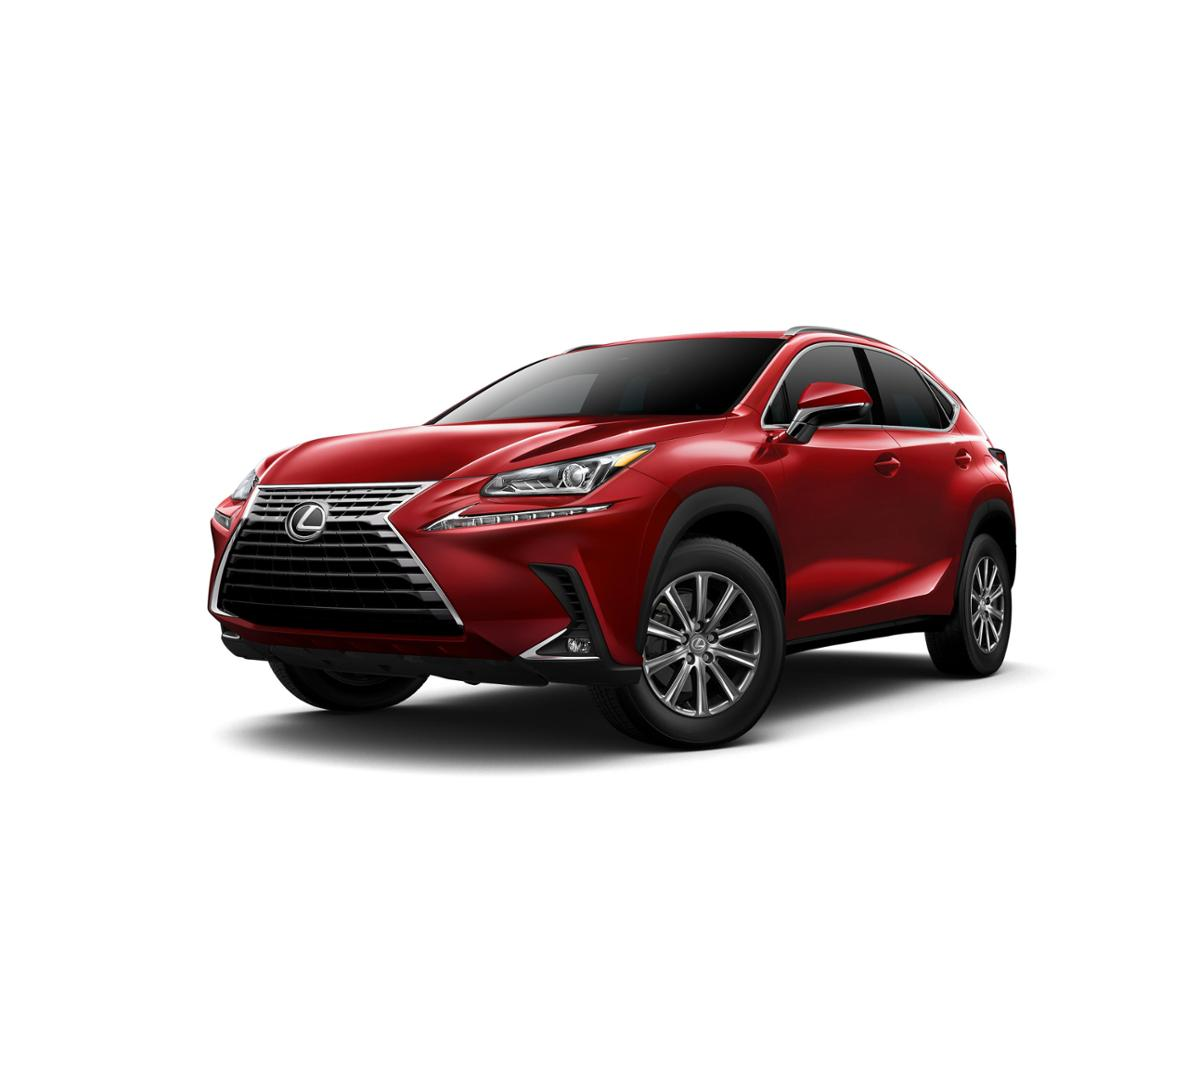 2019 Lexus NX 300 Vehicle Photo in Evansville, IN 47715